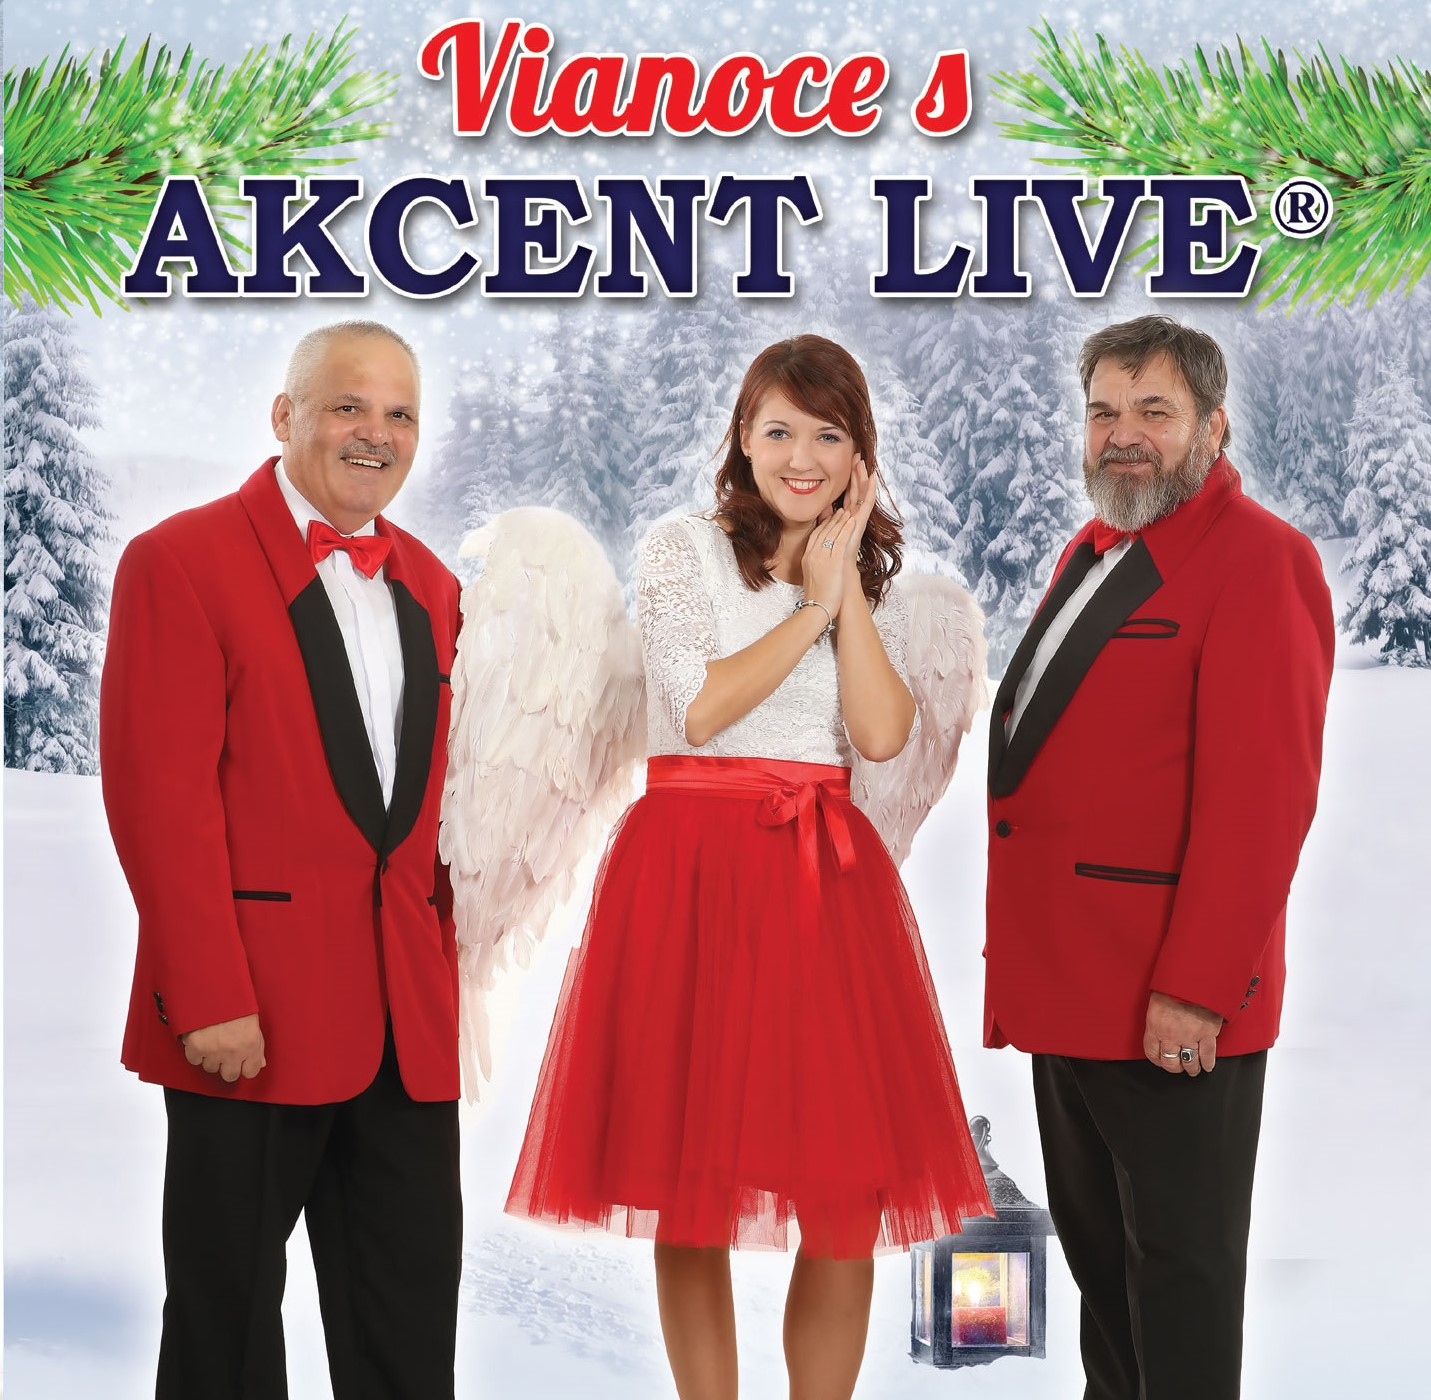 Akcent Live - Vianoce s Akcent Live (cd)